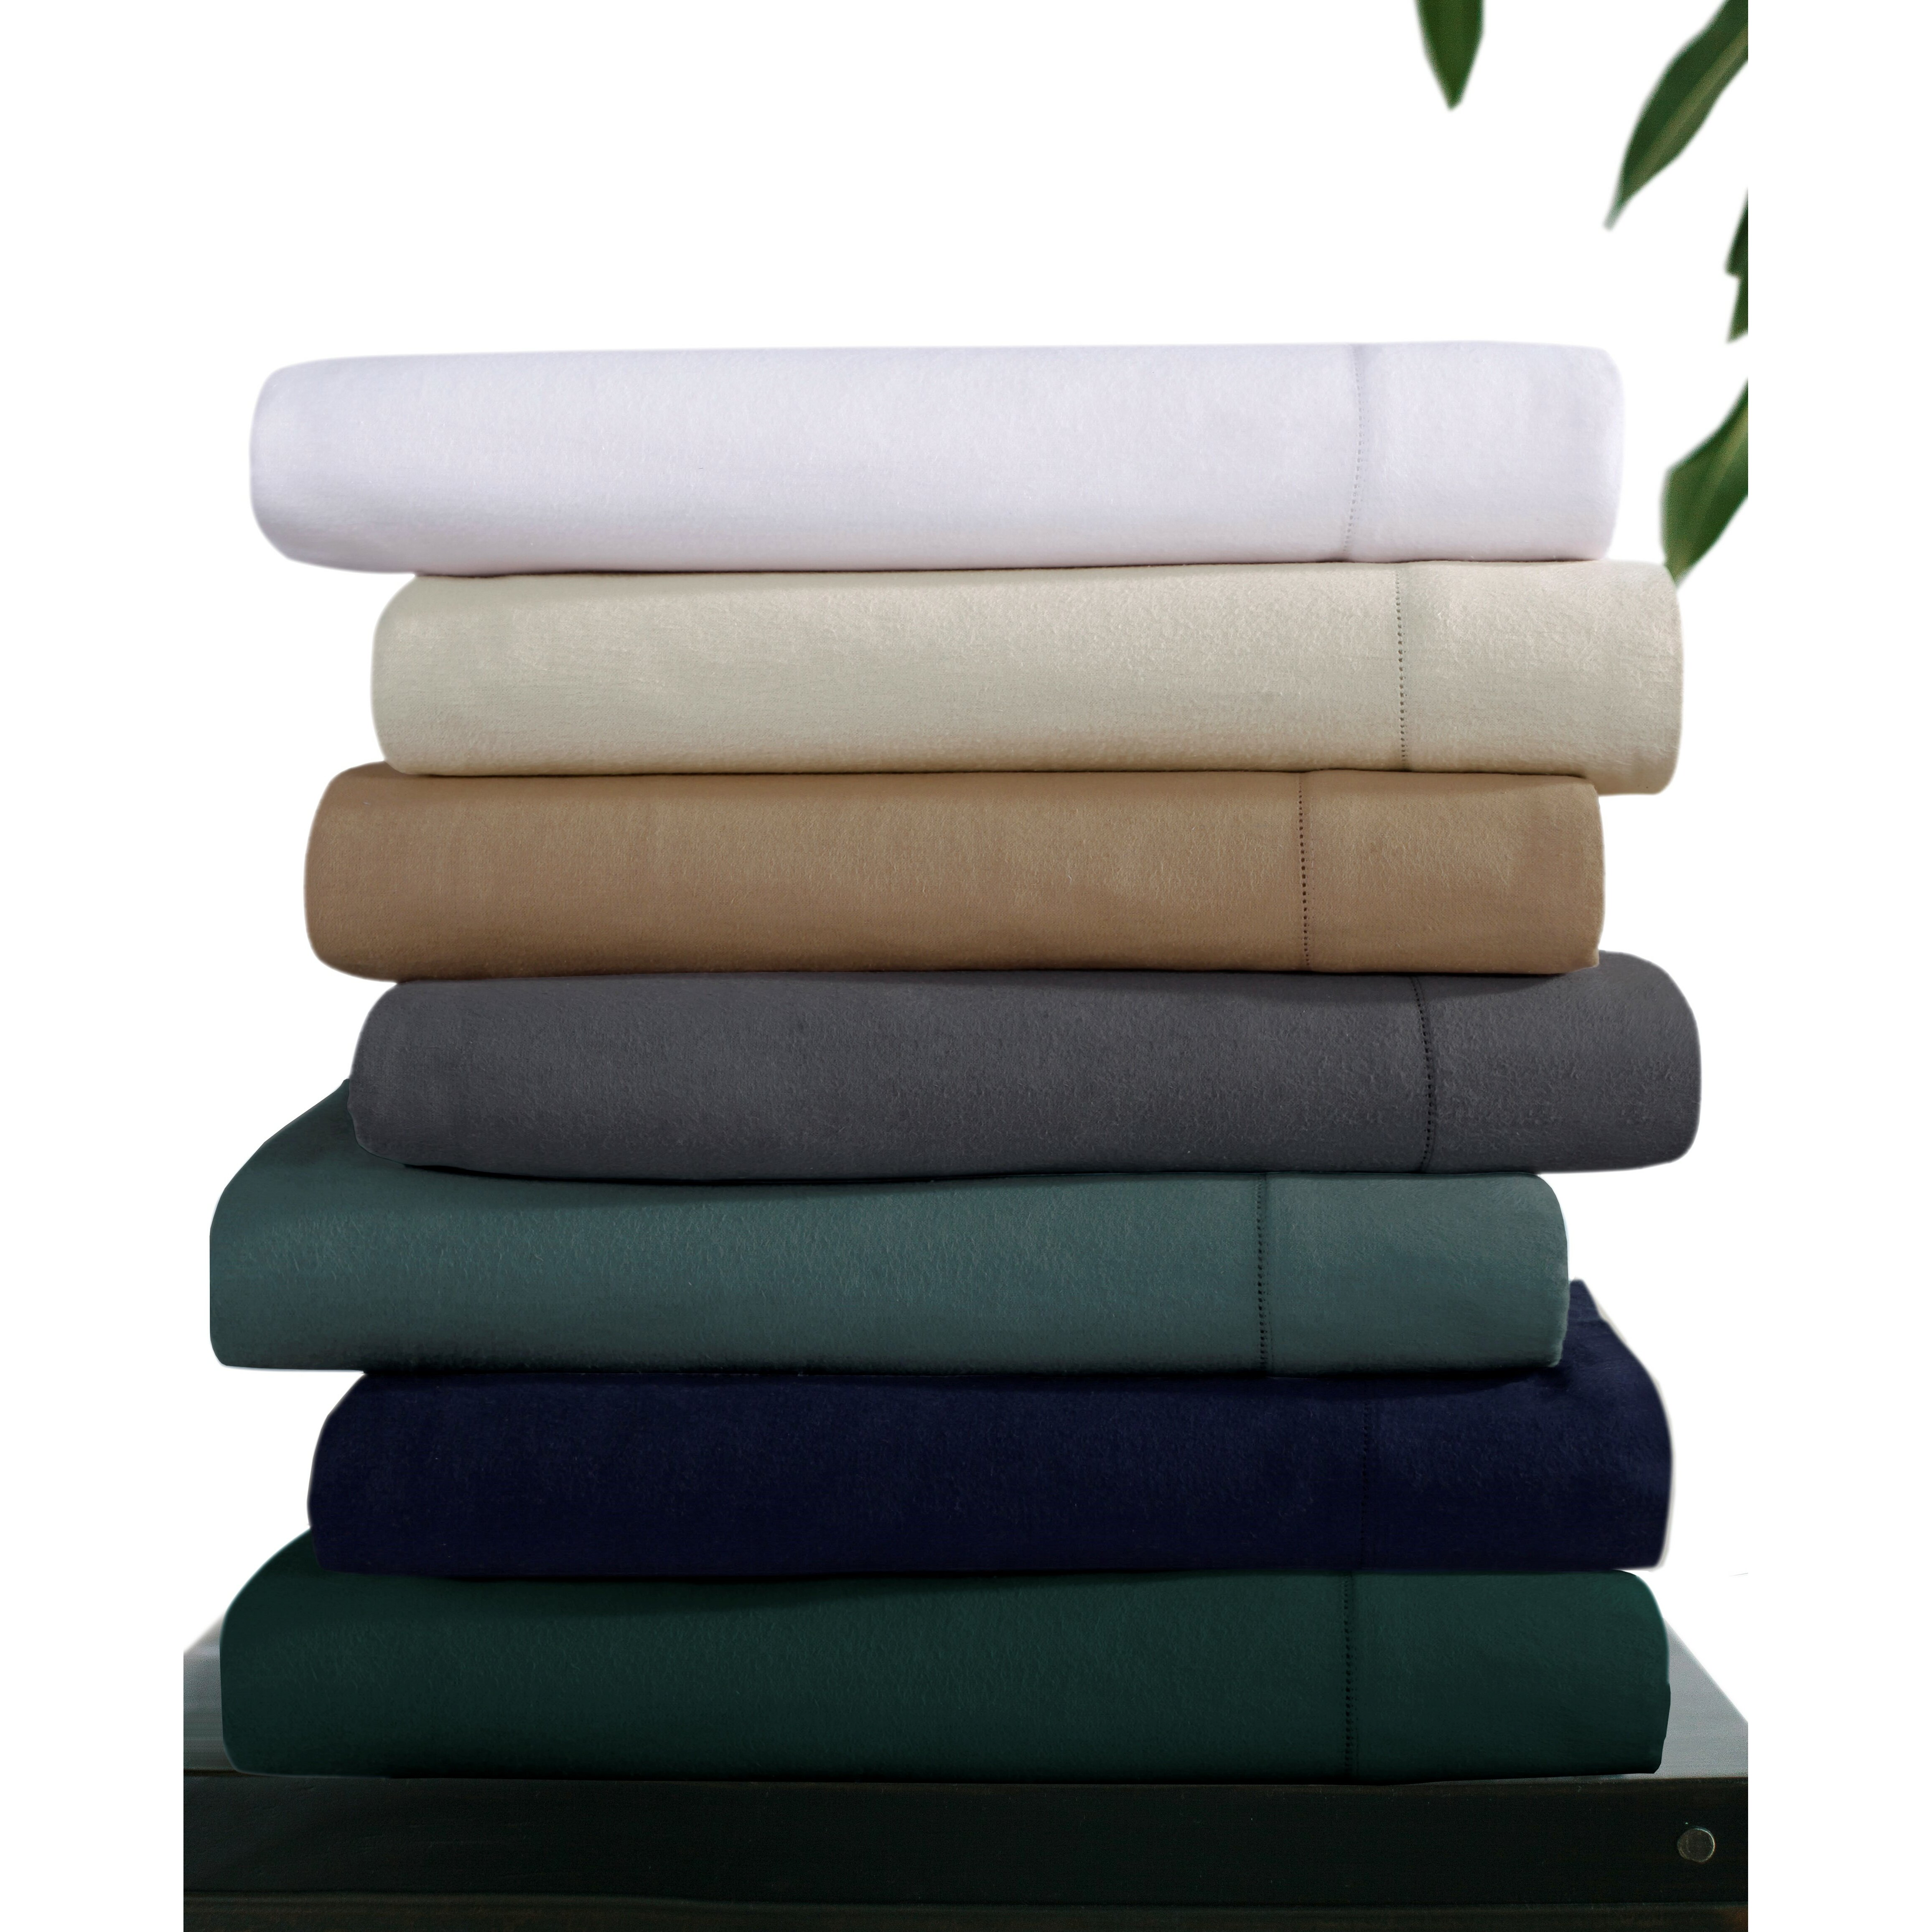 Extra deep pocket queen fitted sheets - Tribeca Living Flannel Solid Extra Deep Pocket Sheet Set